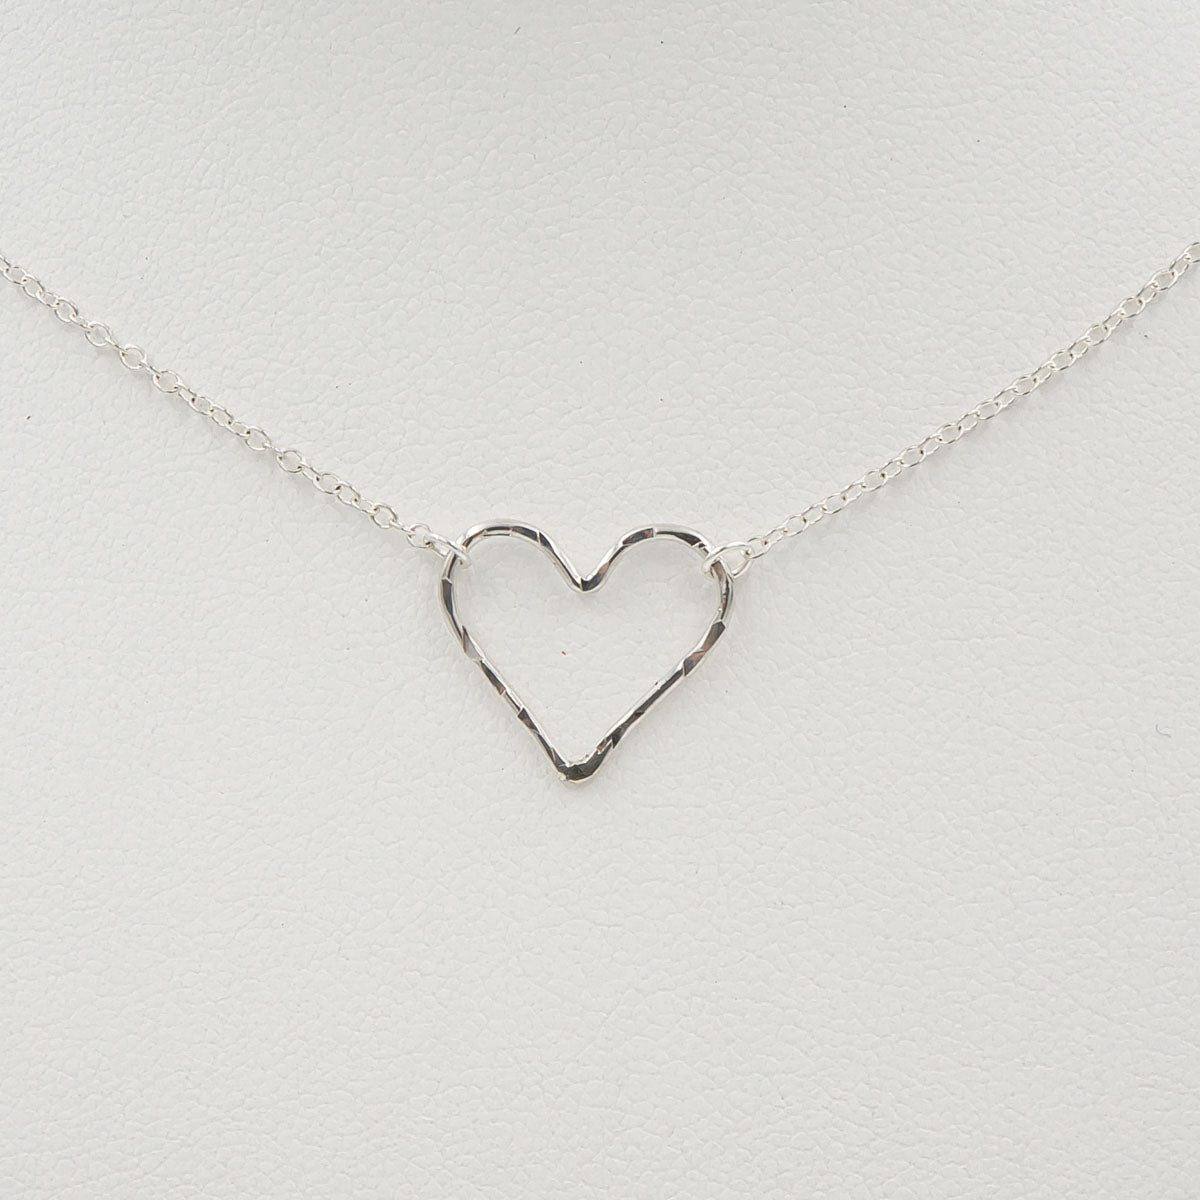 Hammered Heart Sterling Silver Handmade Necklace Closeup